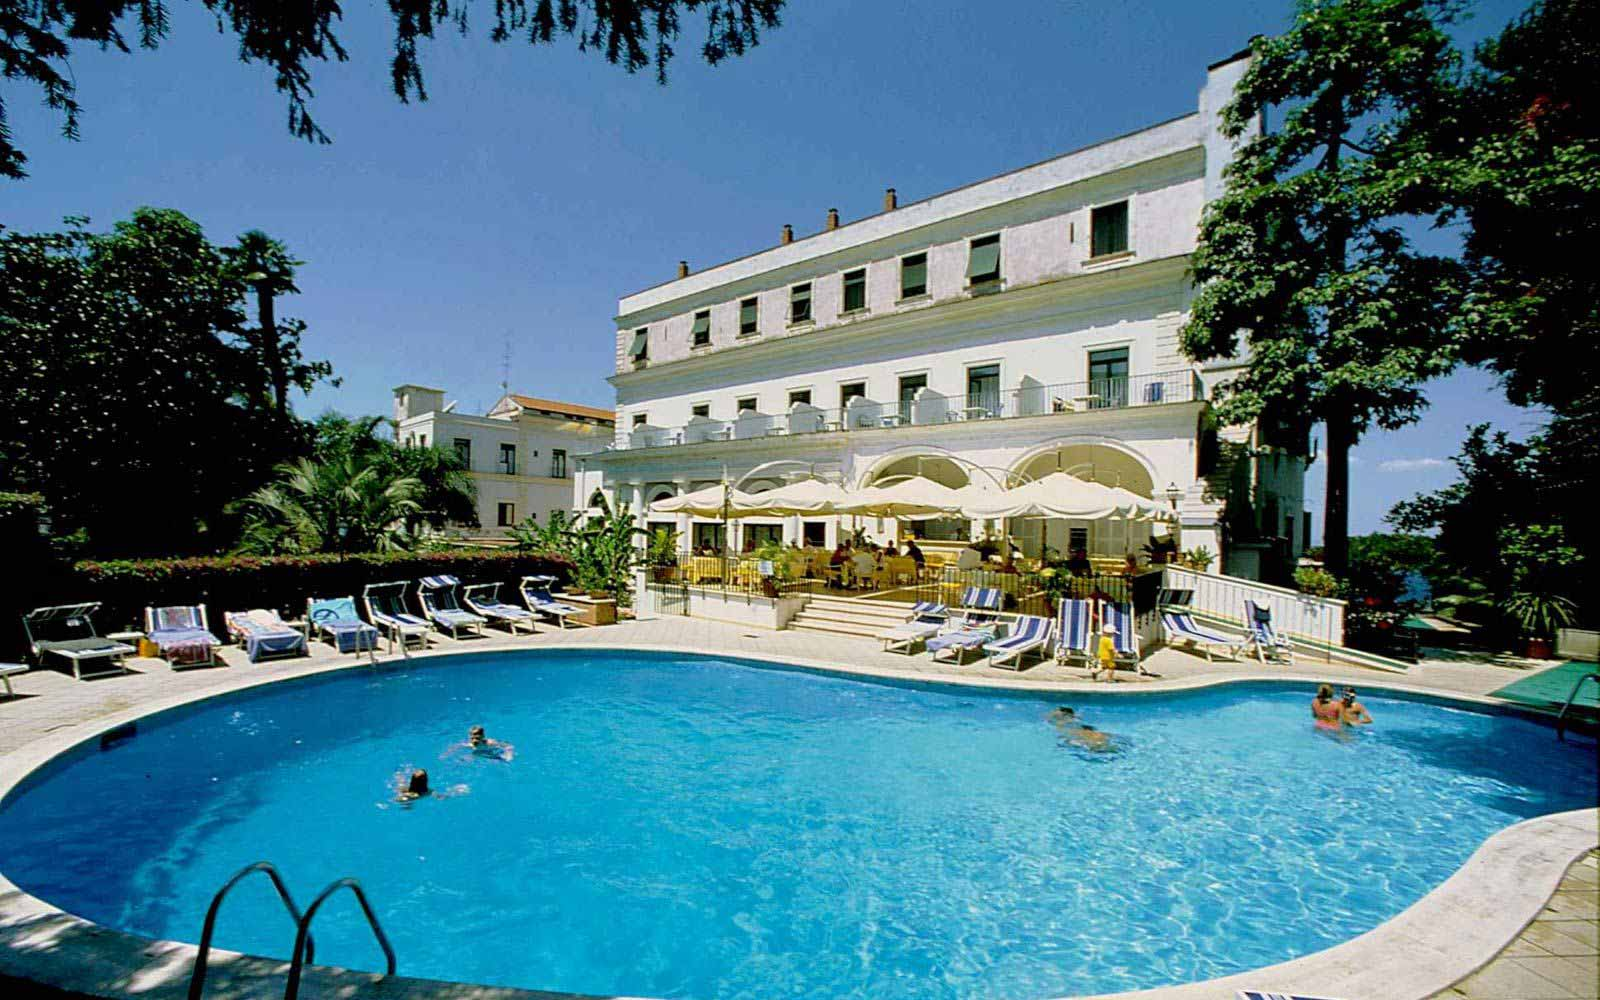 Imperial hotel tramontano sorrento neapolitan riviera - Hotel in sorrento italy with swimming pool ...